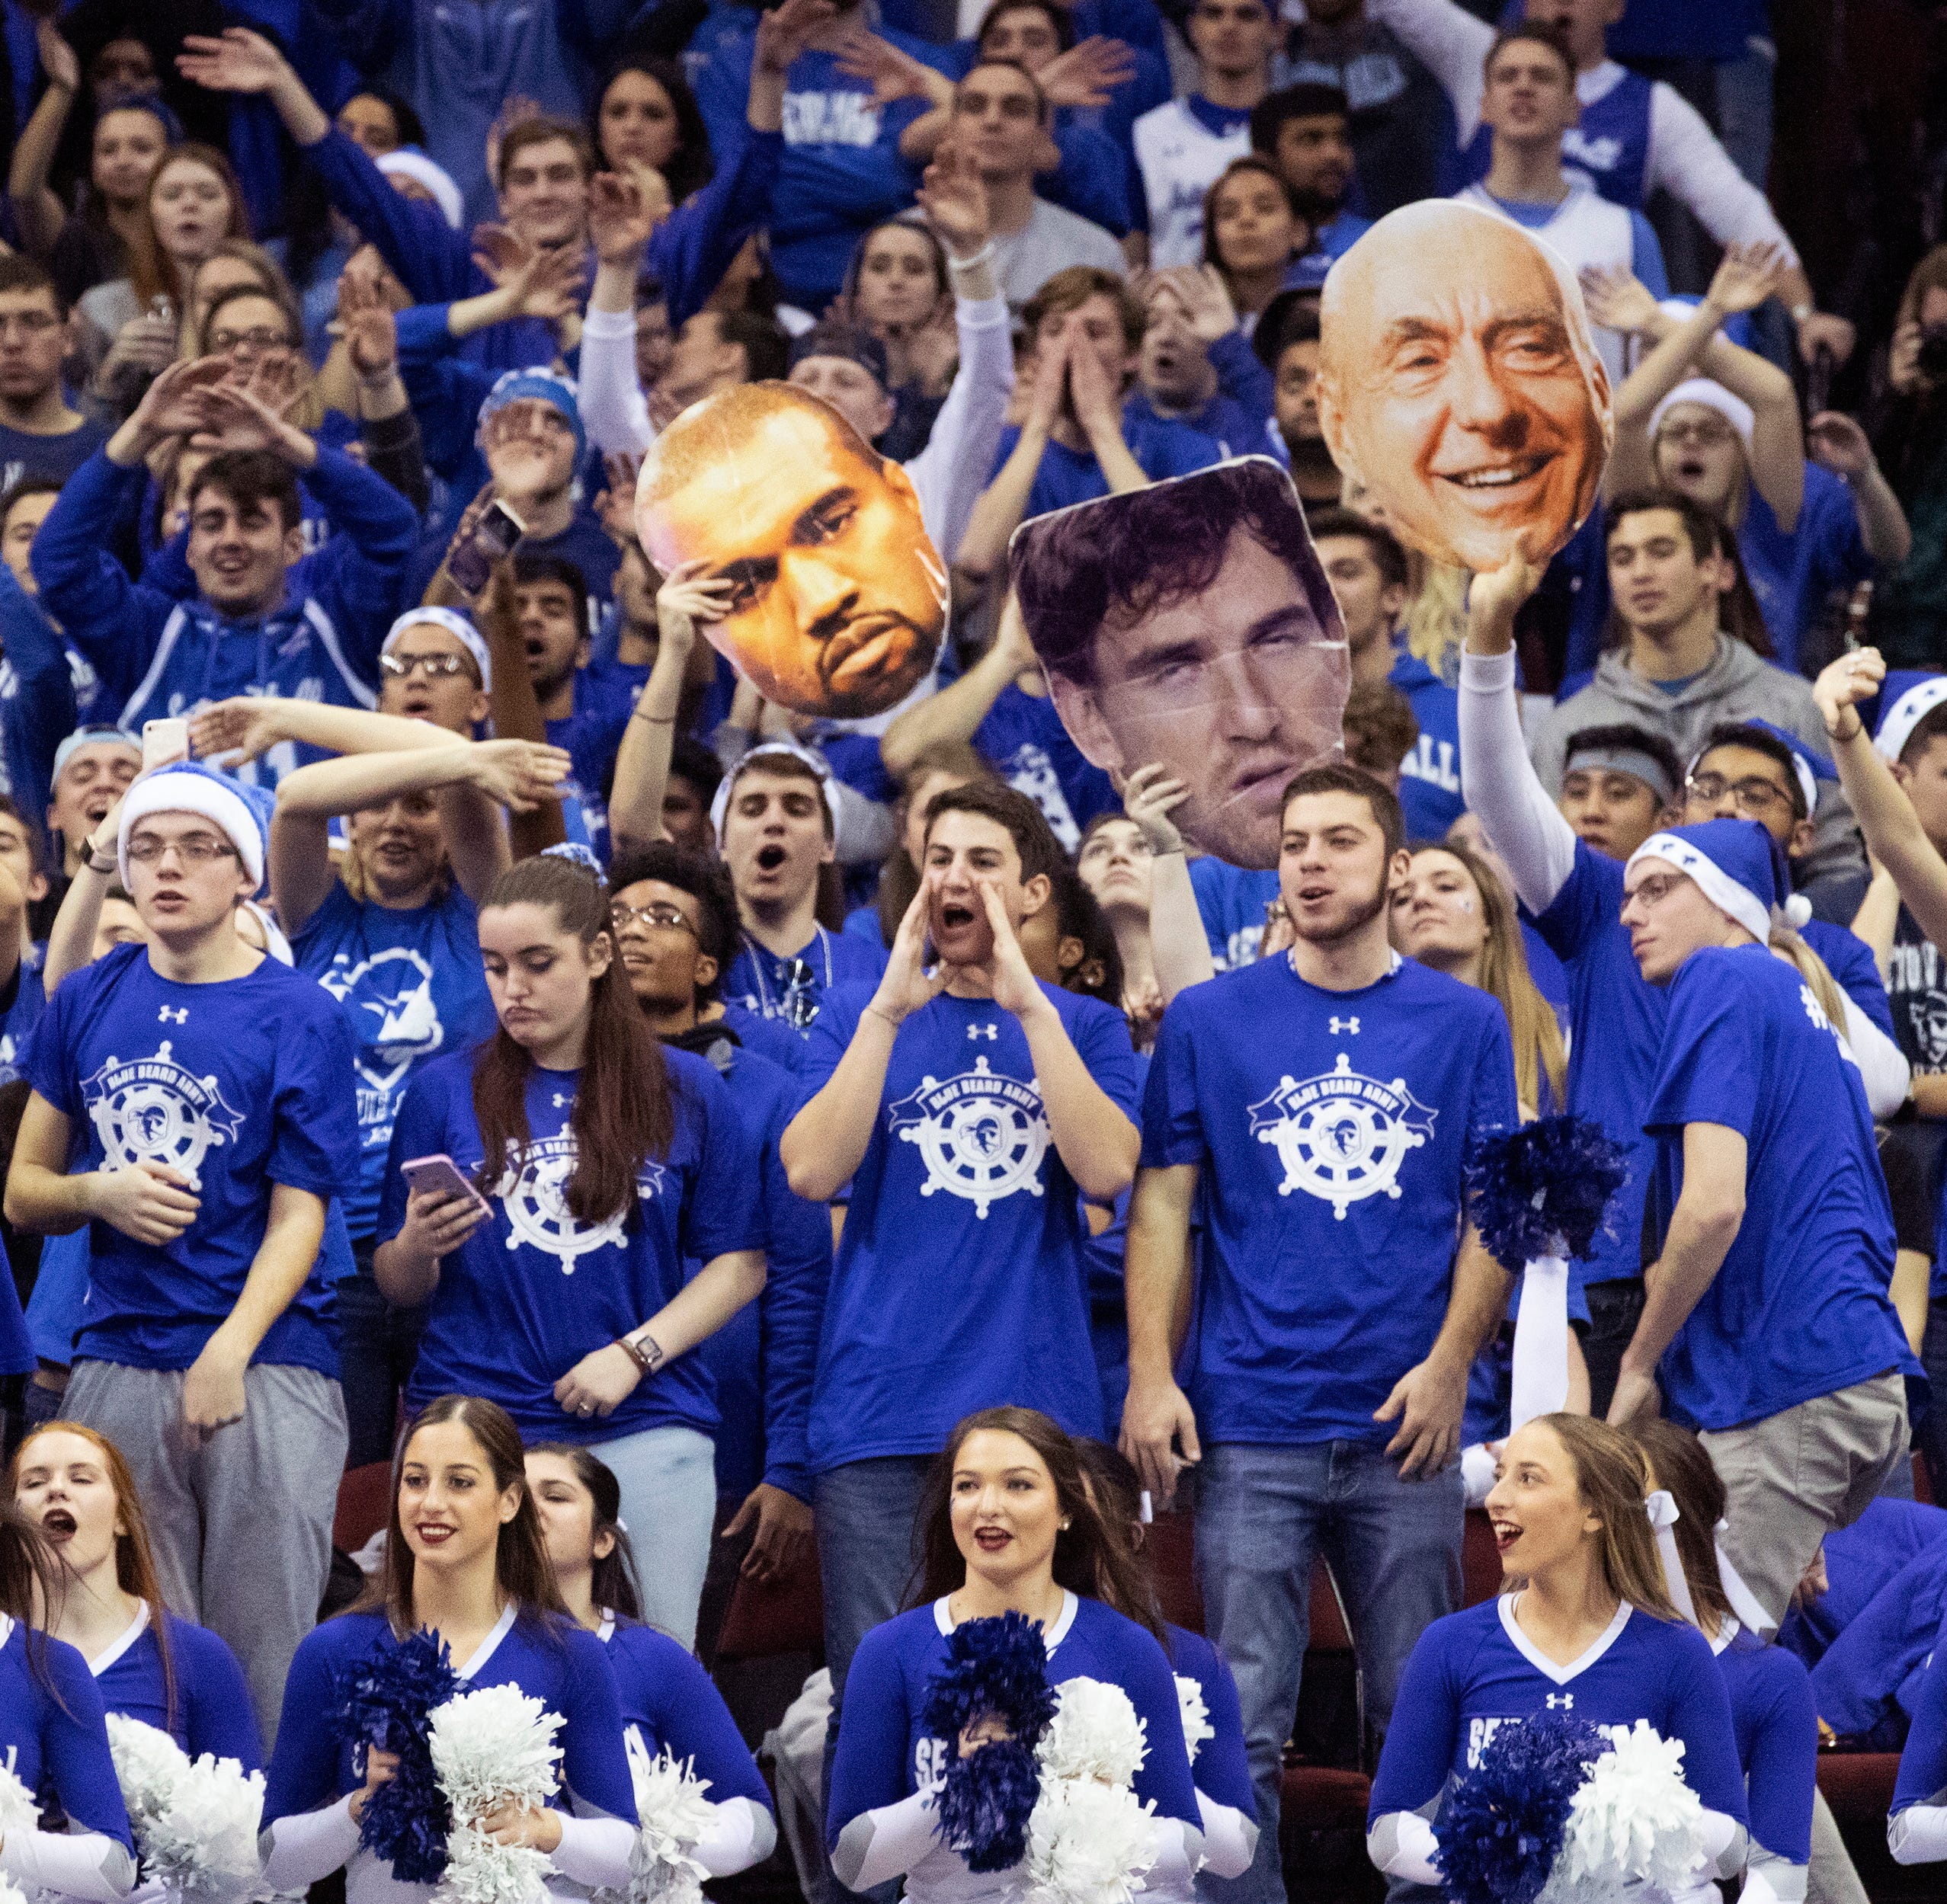 Seton Hall vs. Wofford: NCAA Tournament scouting report and prediction